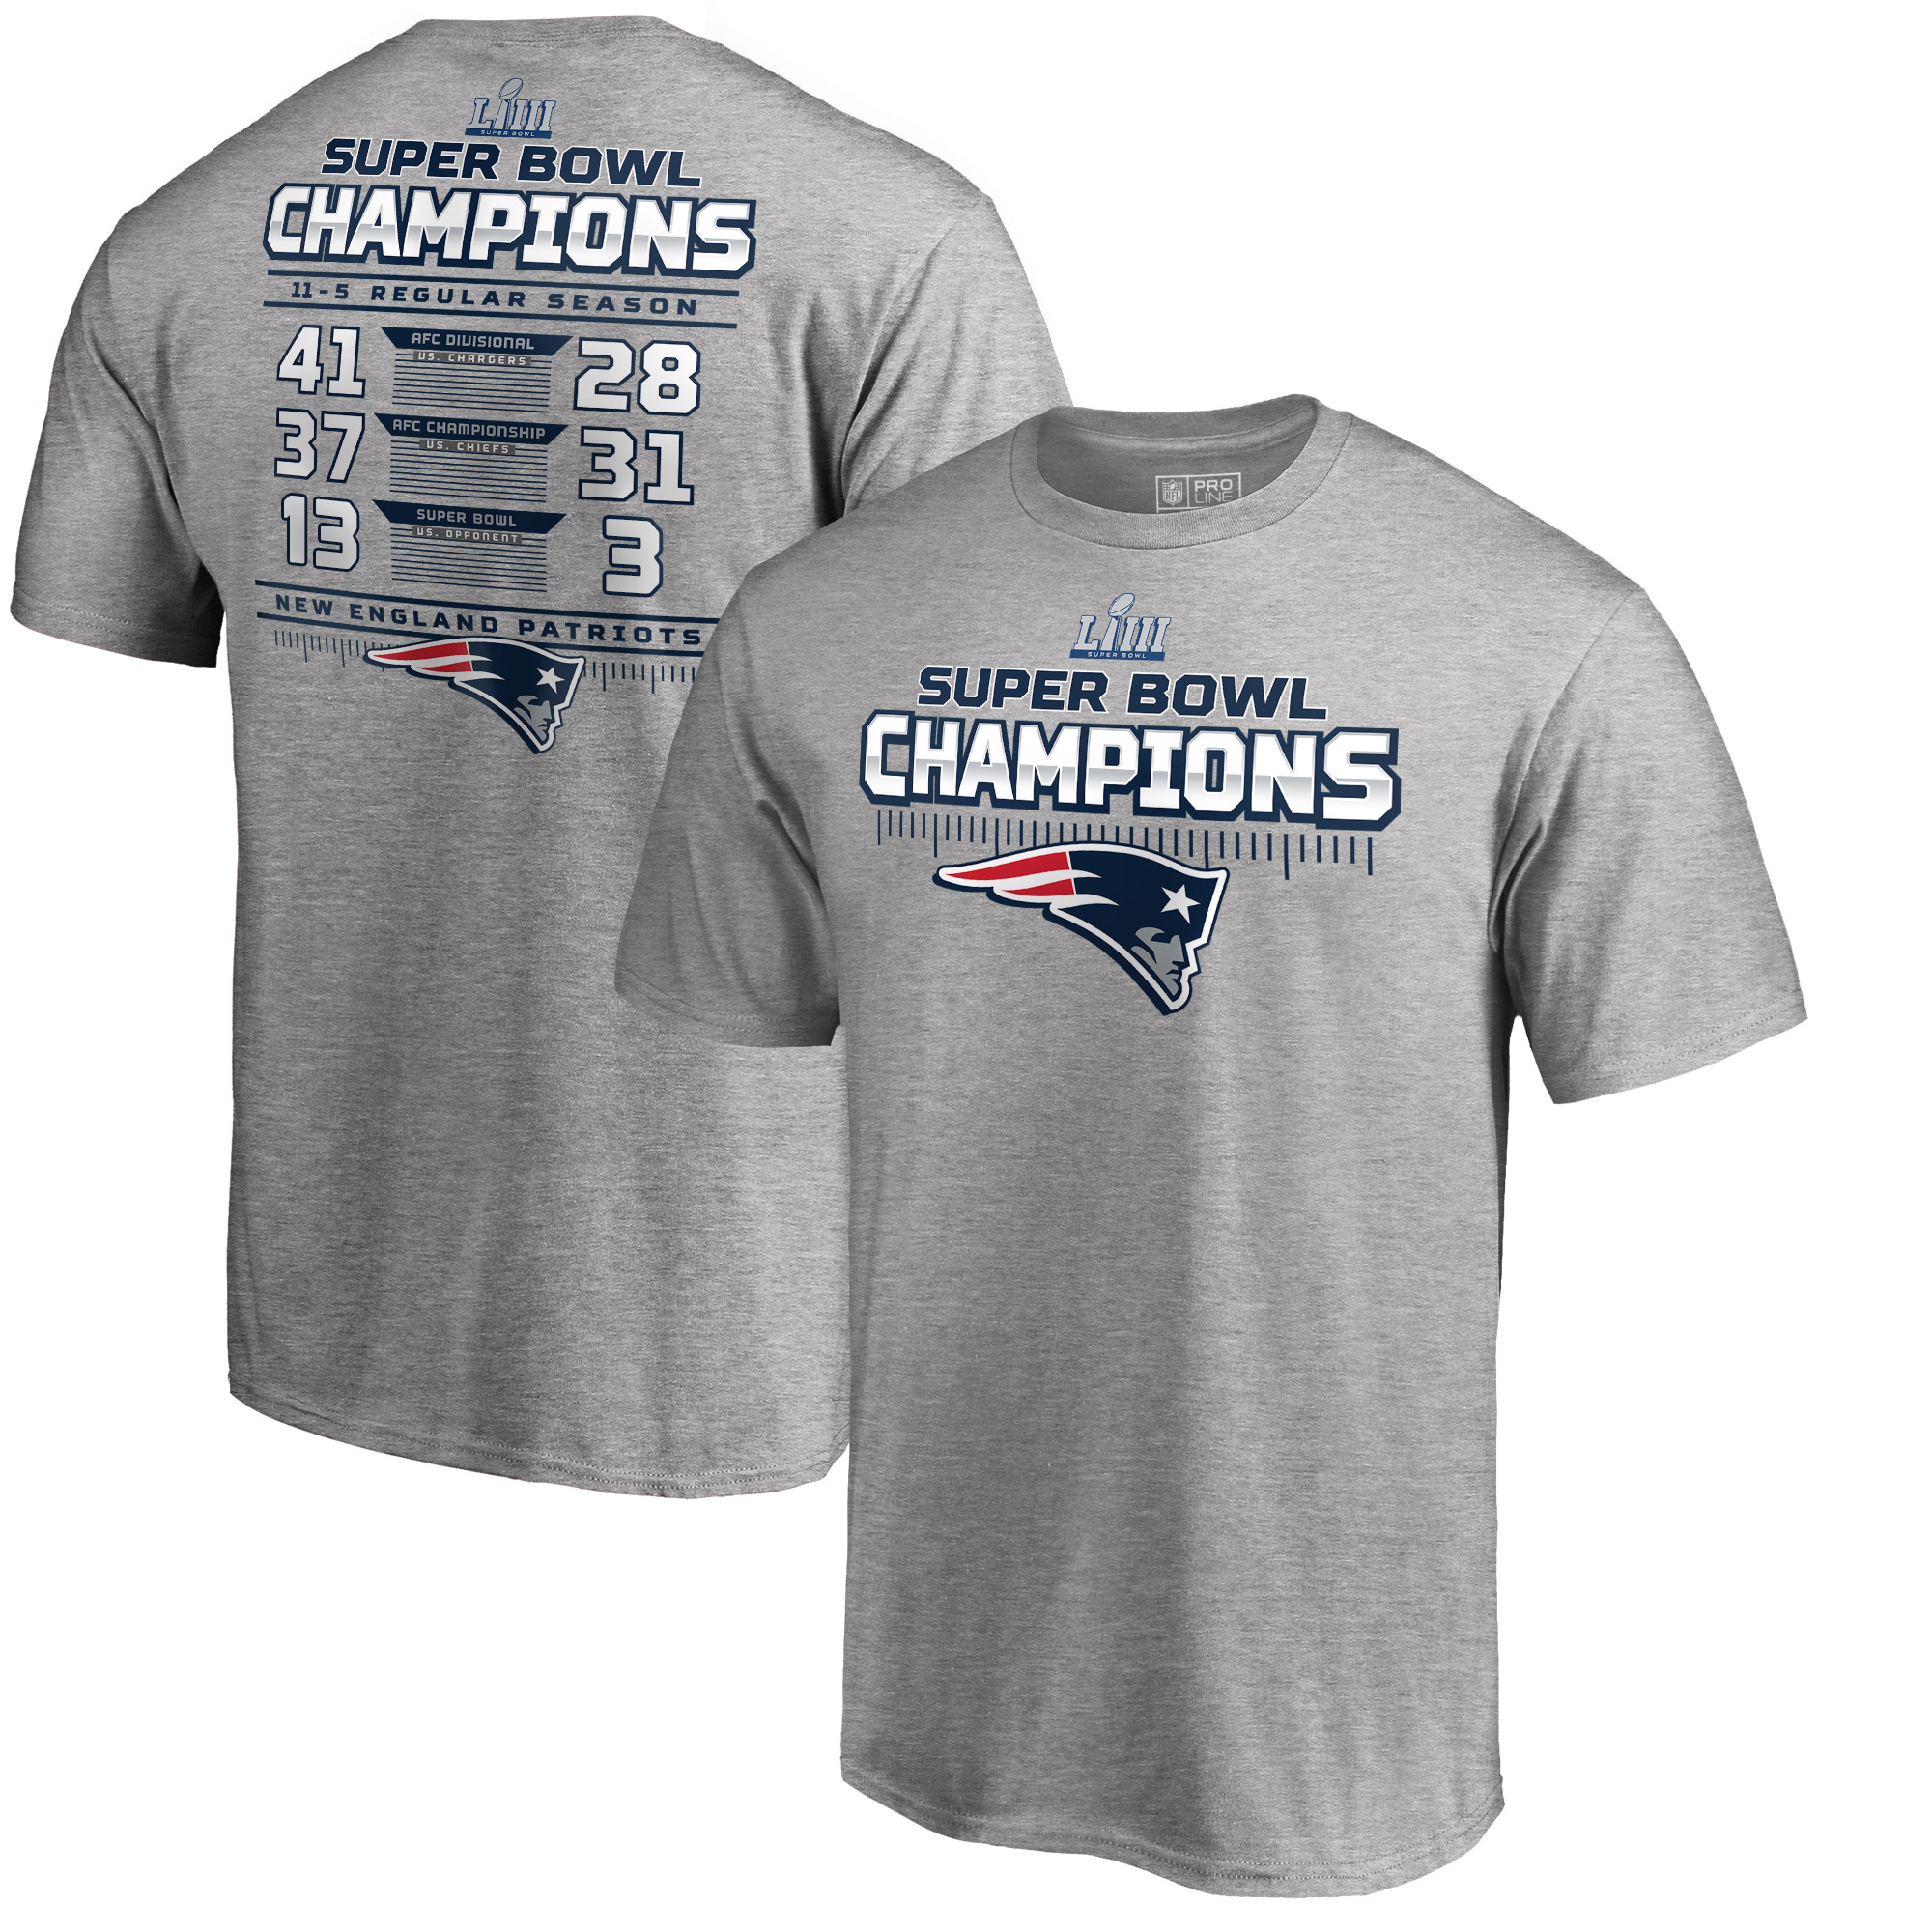 New England Patriots NFL Pro Line by Fanatics Branded Super Bowl LIII Champions Interception Schedule T-Shirt - Heather Gray